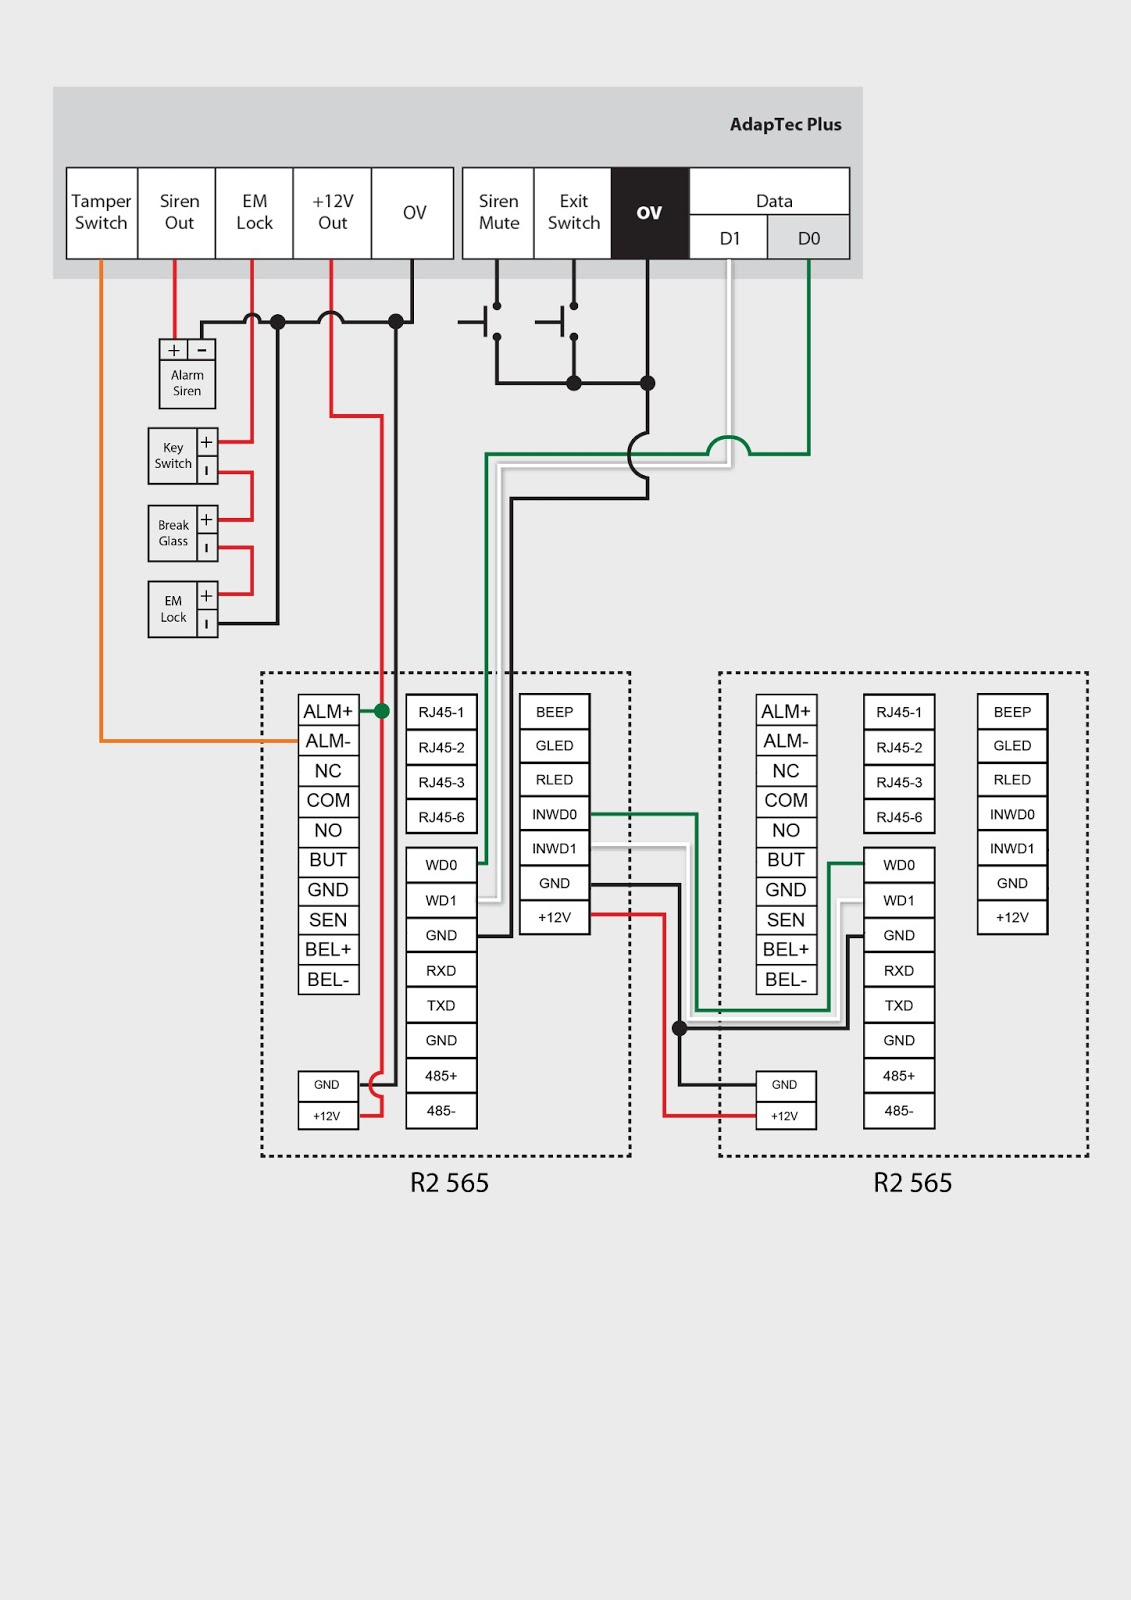 hight resolution of master com siren controller wiring diagram wiring library master com siren controller wiring diagram